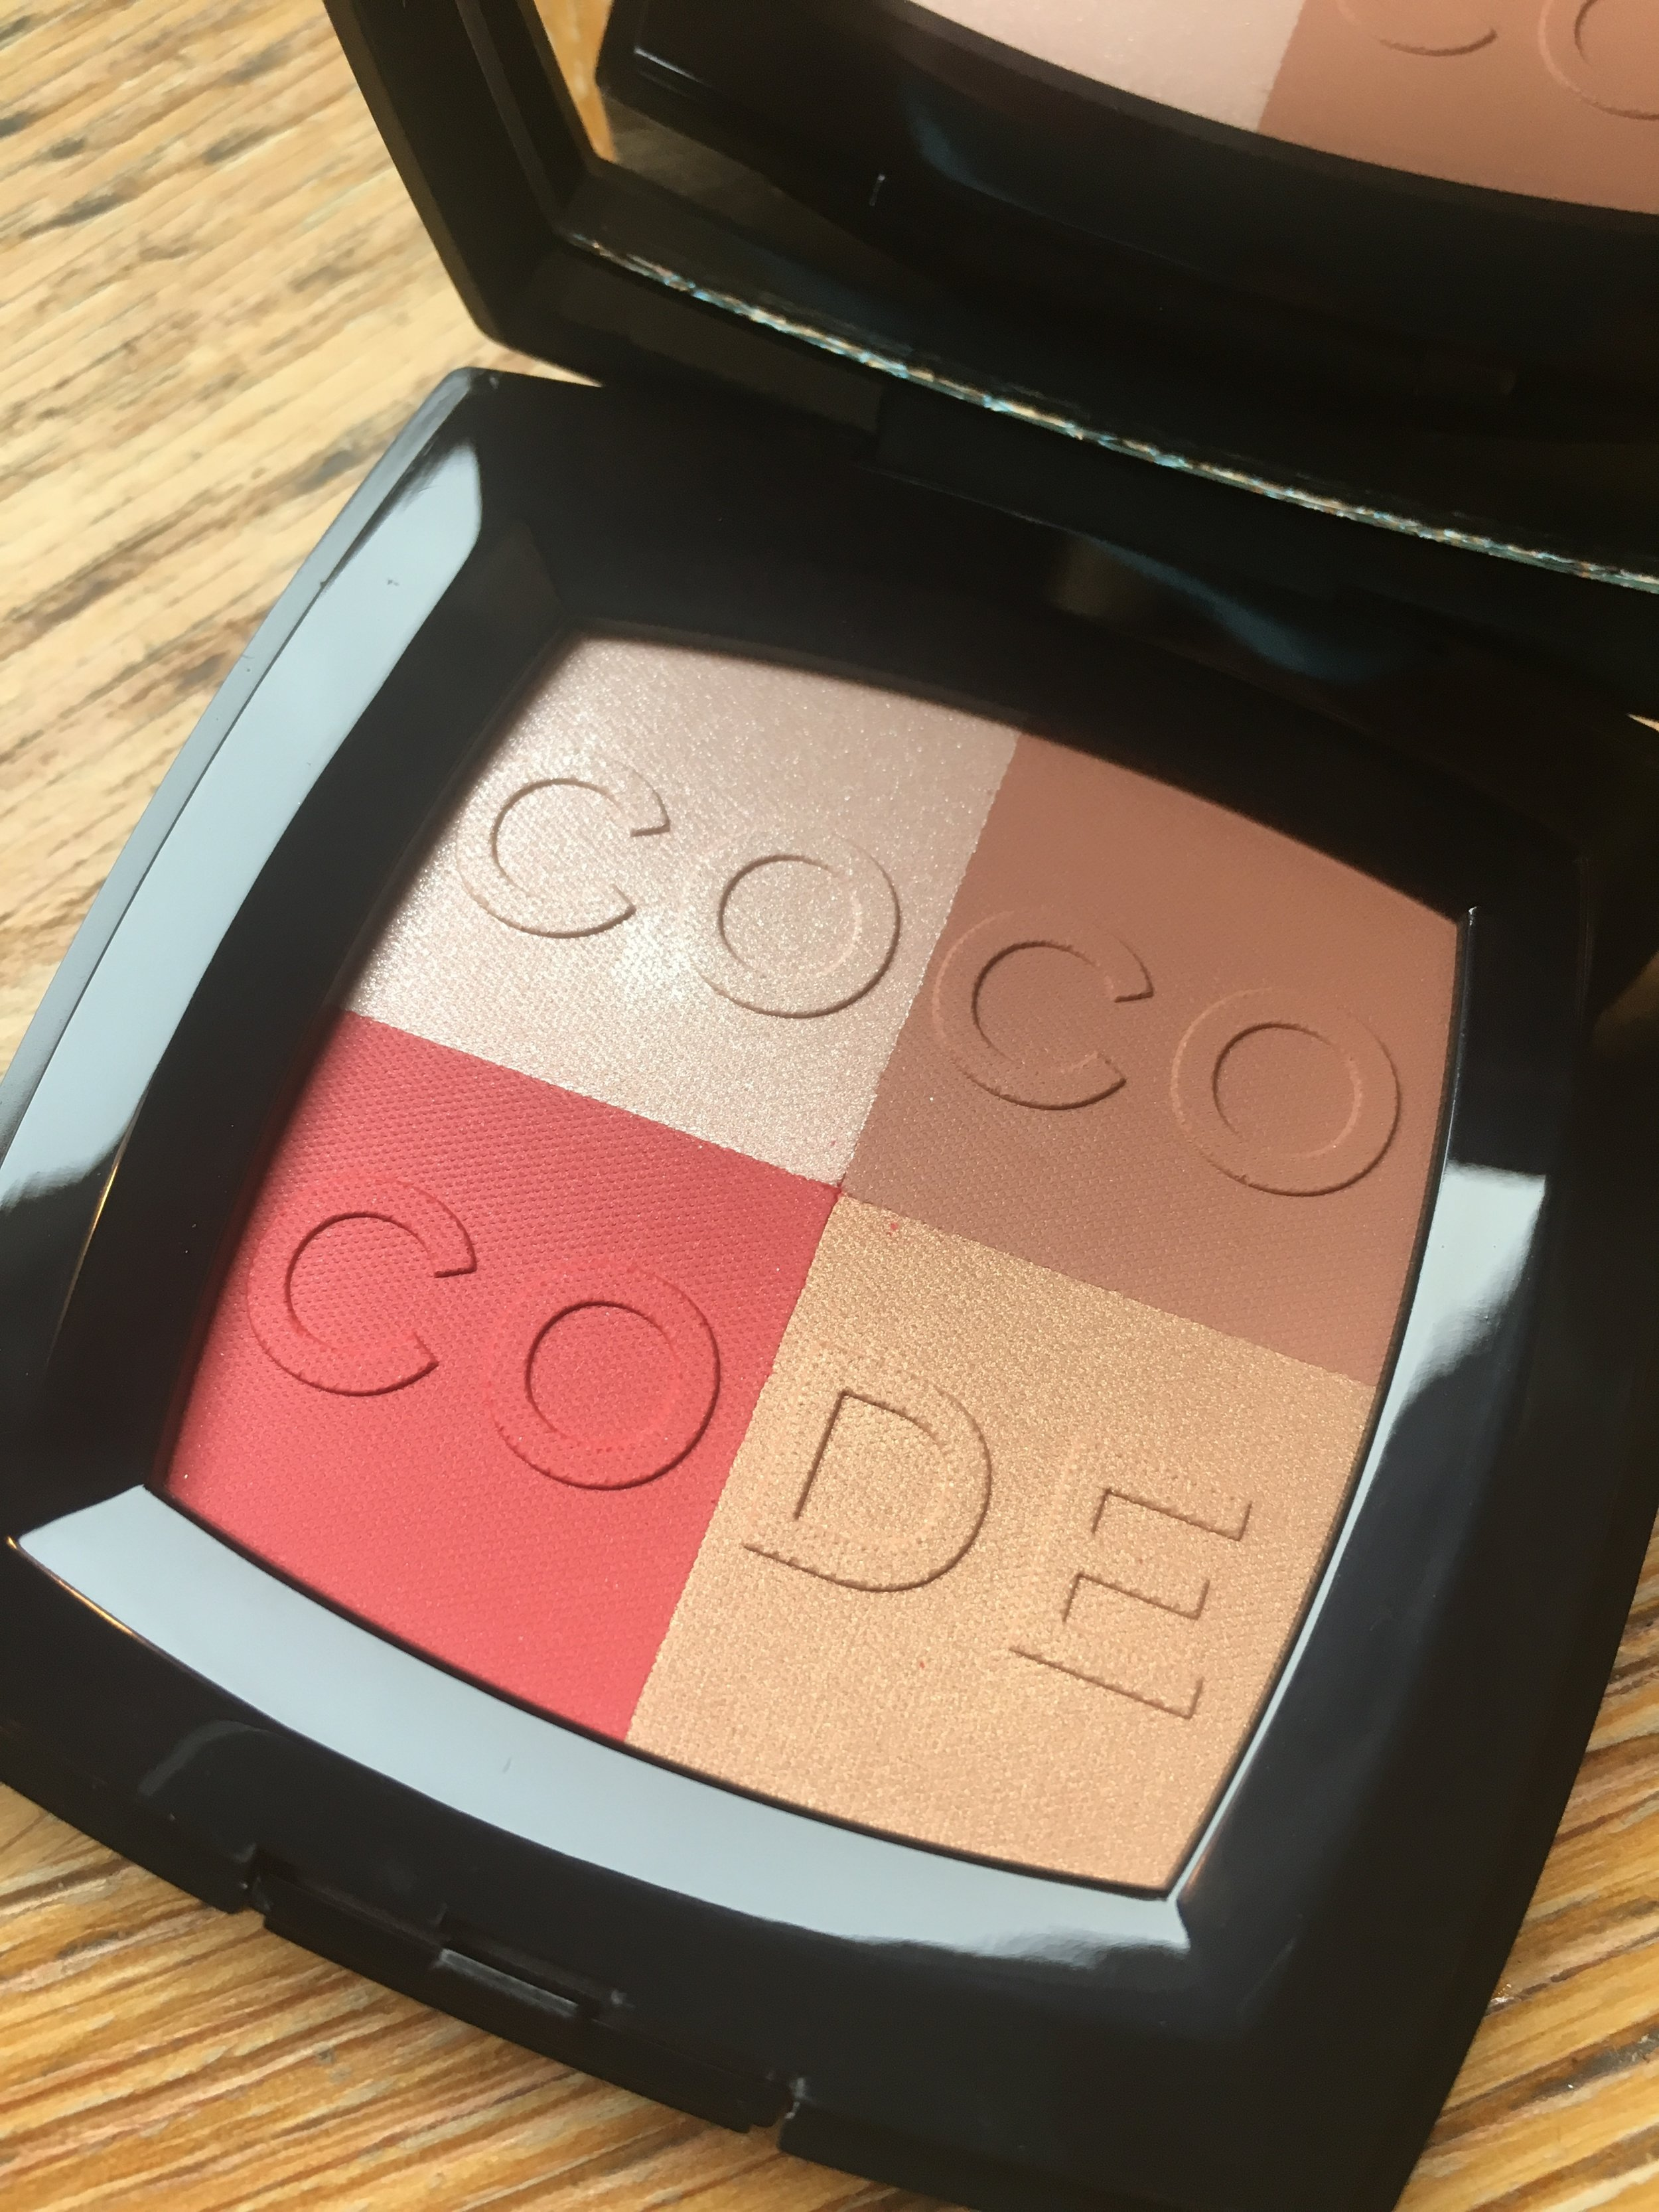 The Coco Code palette - use the colours singly, or swirl together as blusher